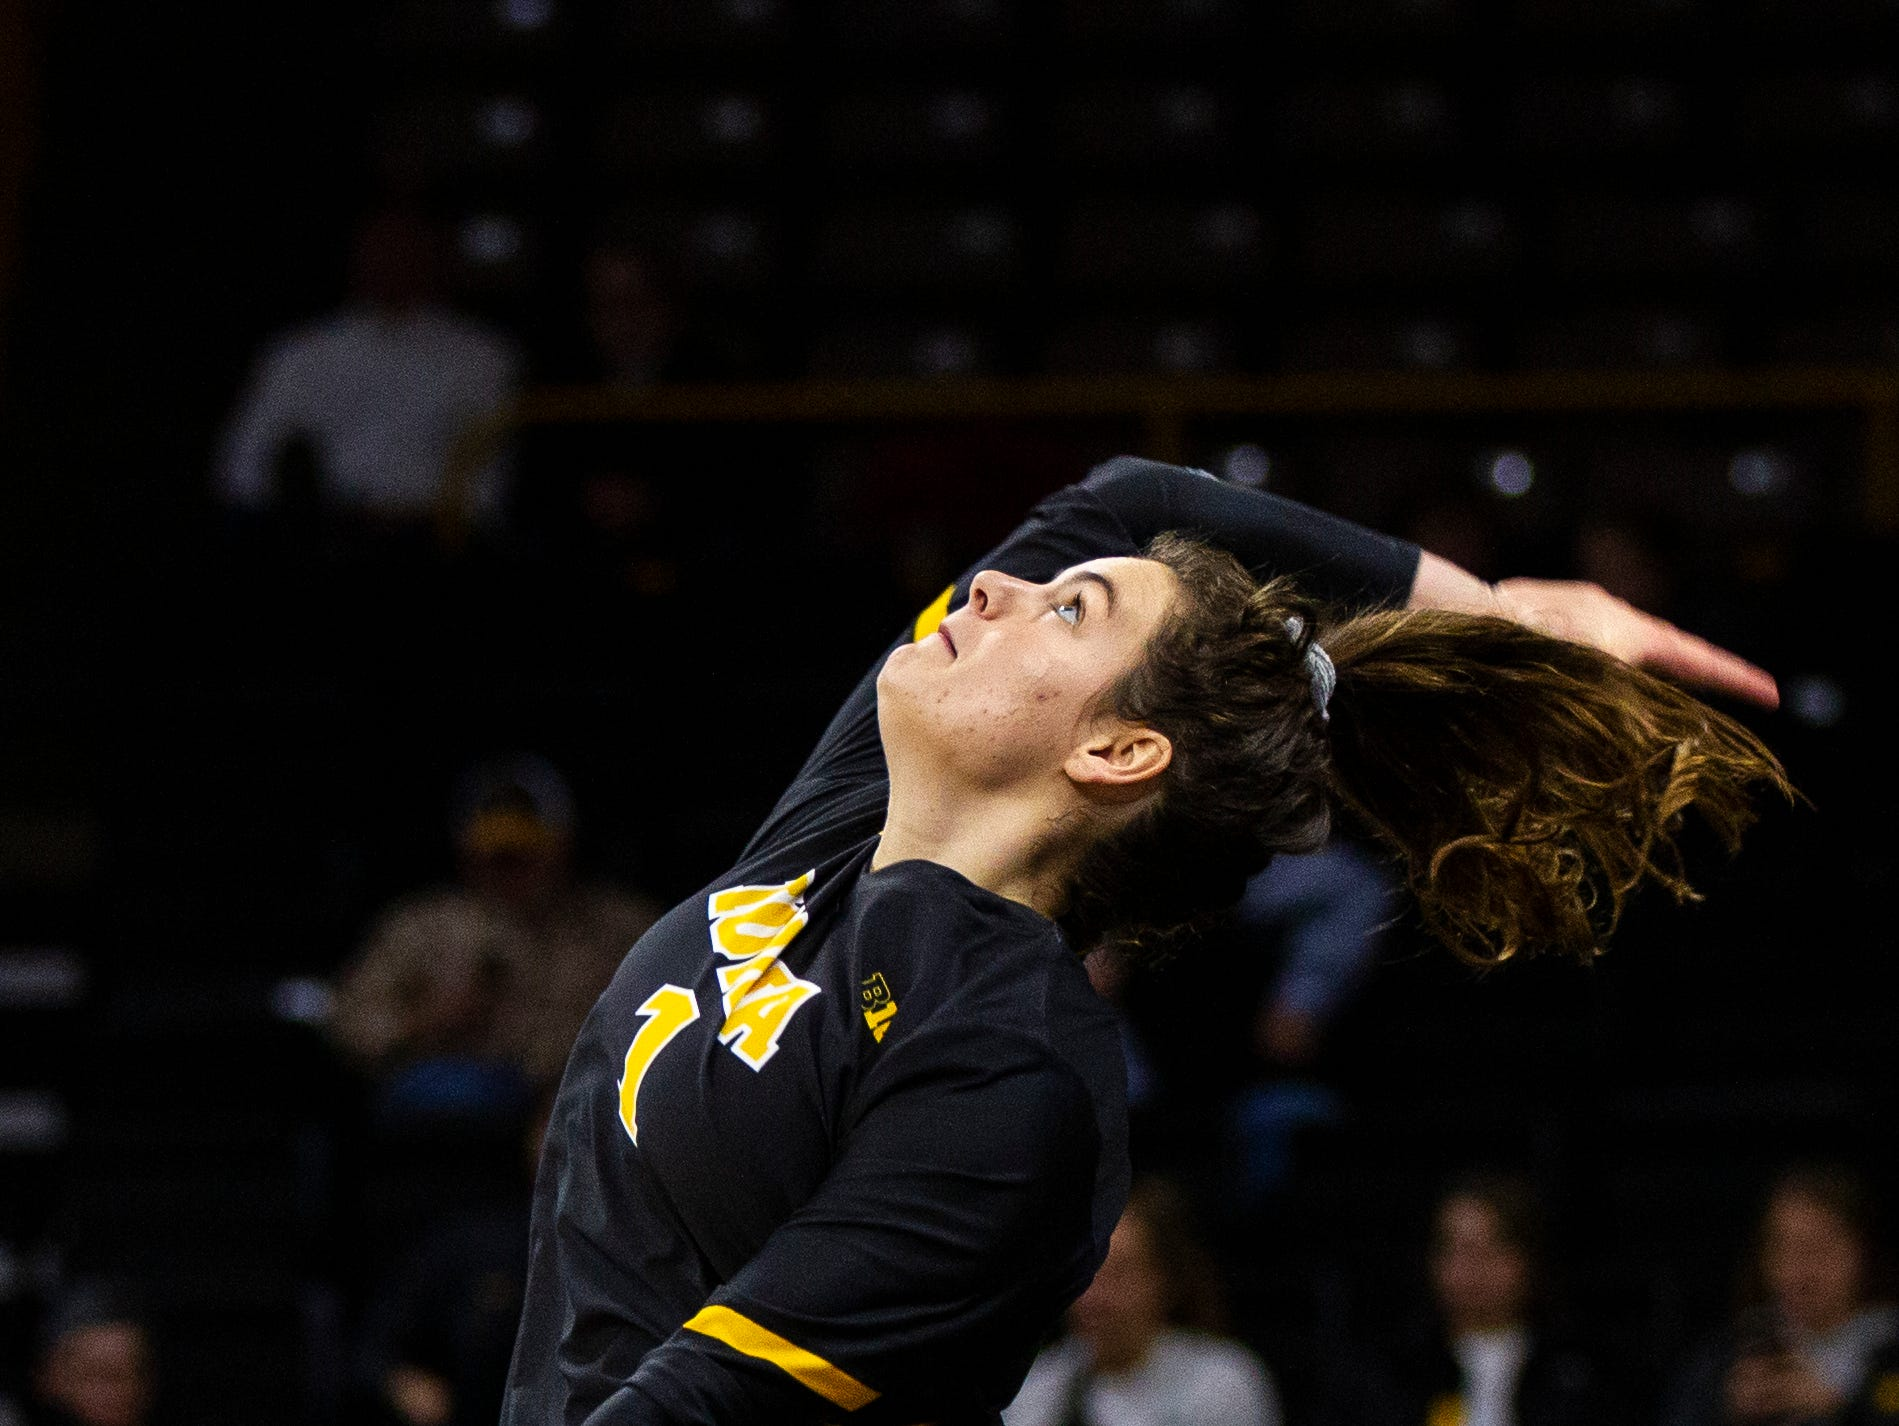 Iowa defensive specialist Molly Kelly (1) serves during an NCAA volleyball game on Wednesday, Nov. 7, 2018, at Carver-Hawkeye Arena in Iowa City.